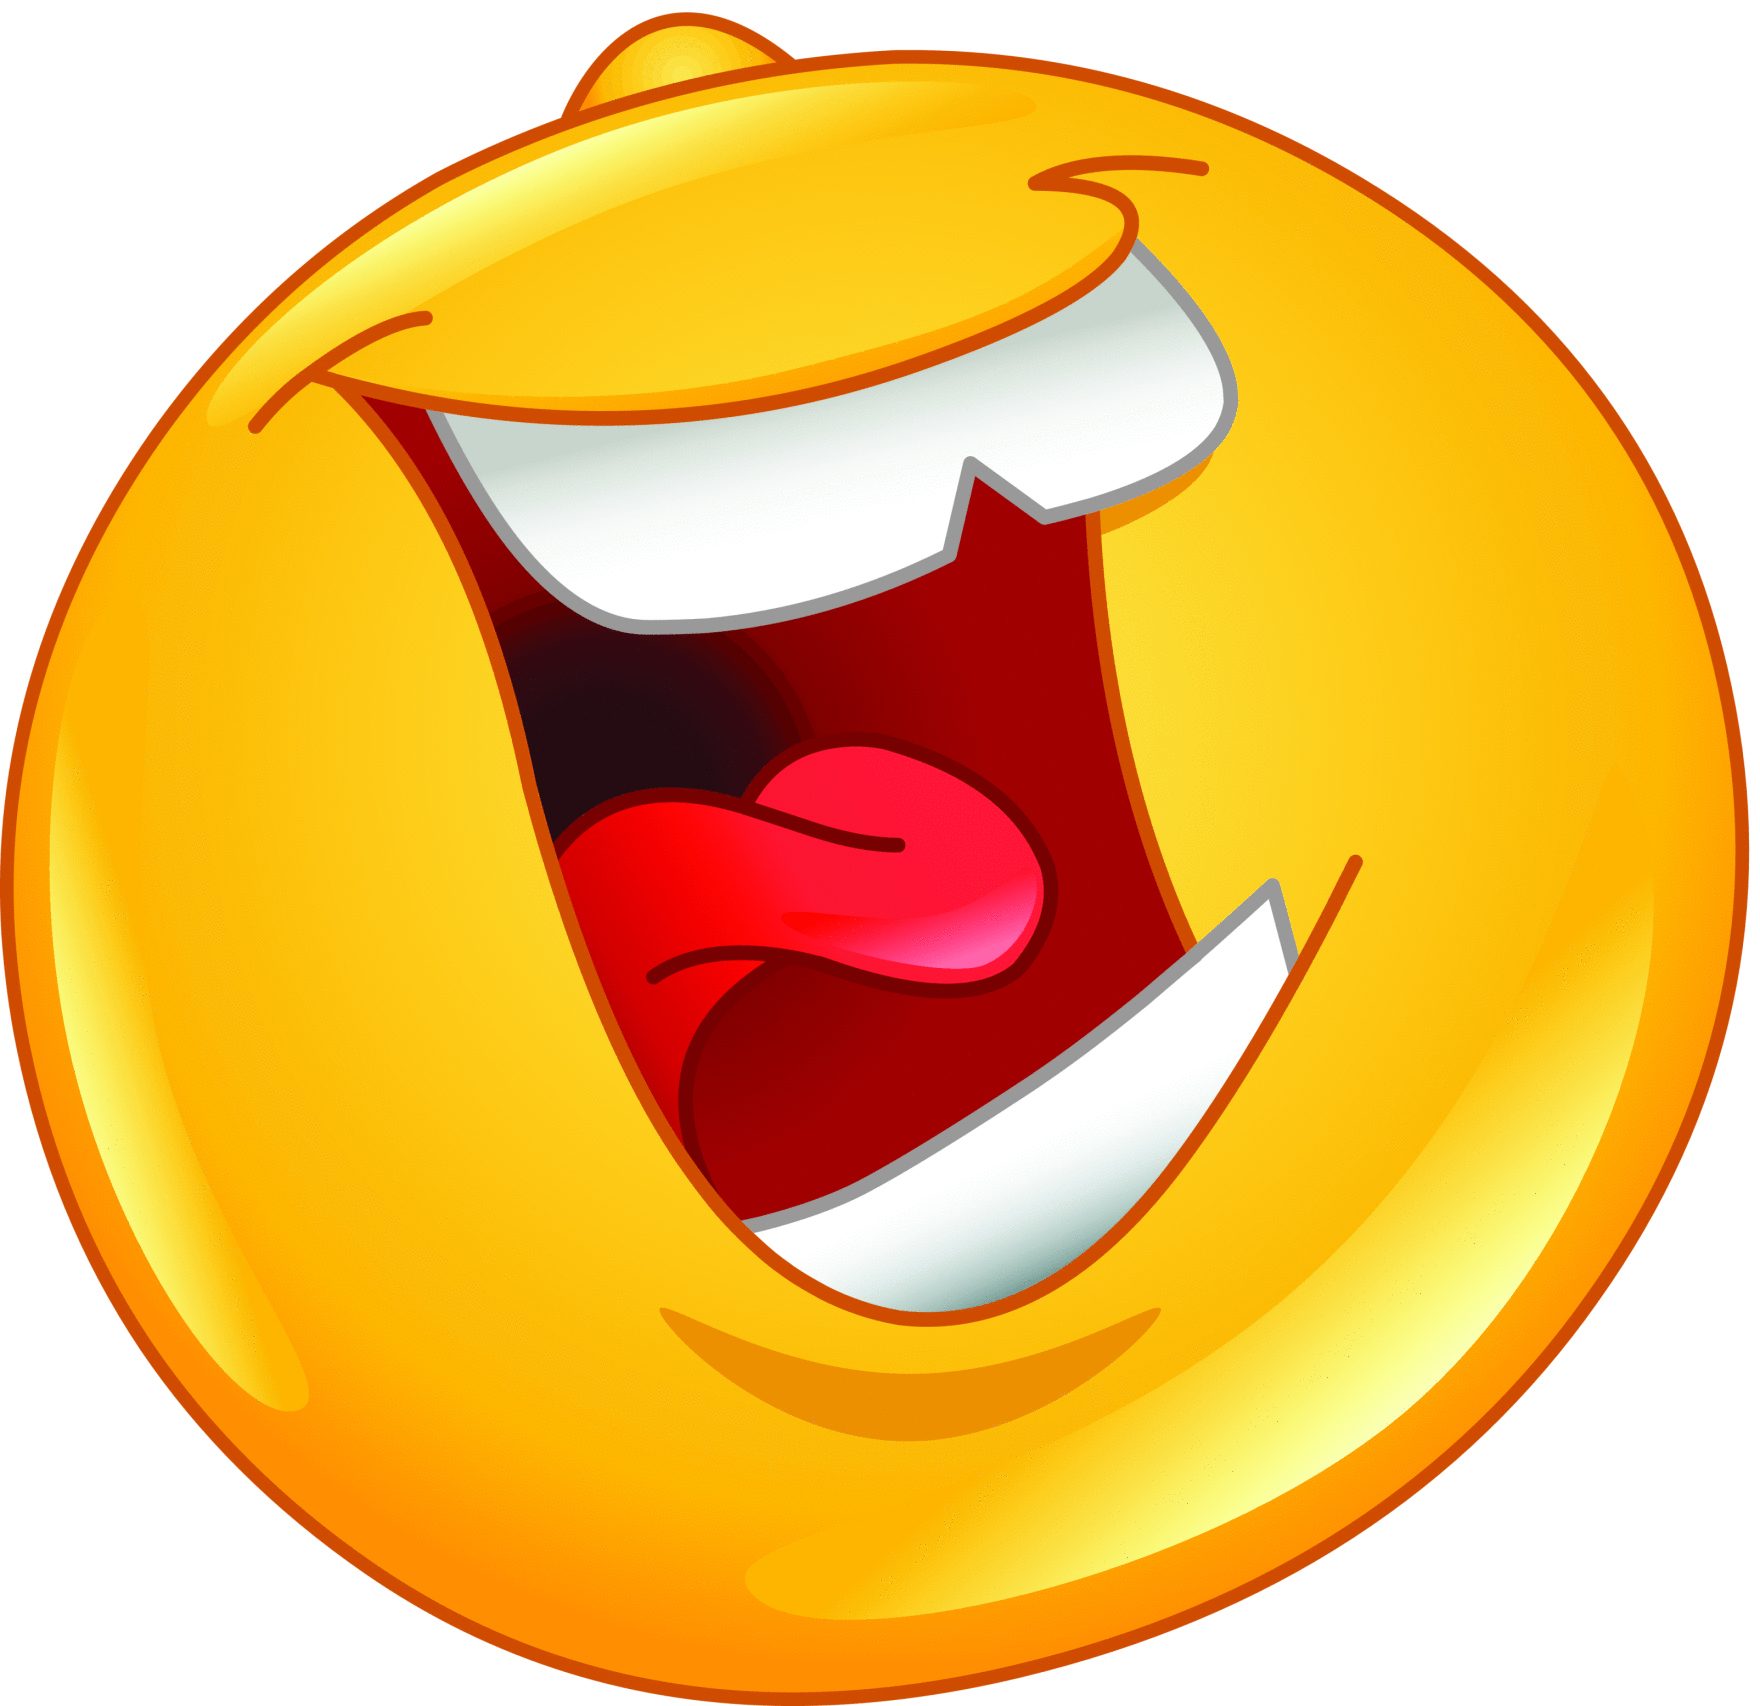 laughing faces cartoon - photo #21